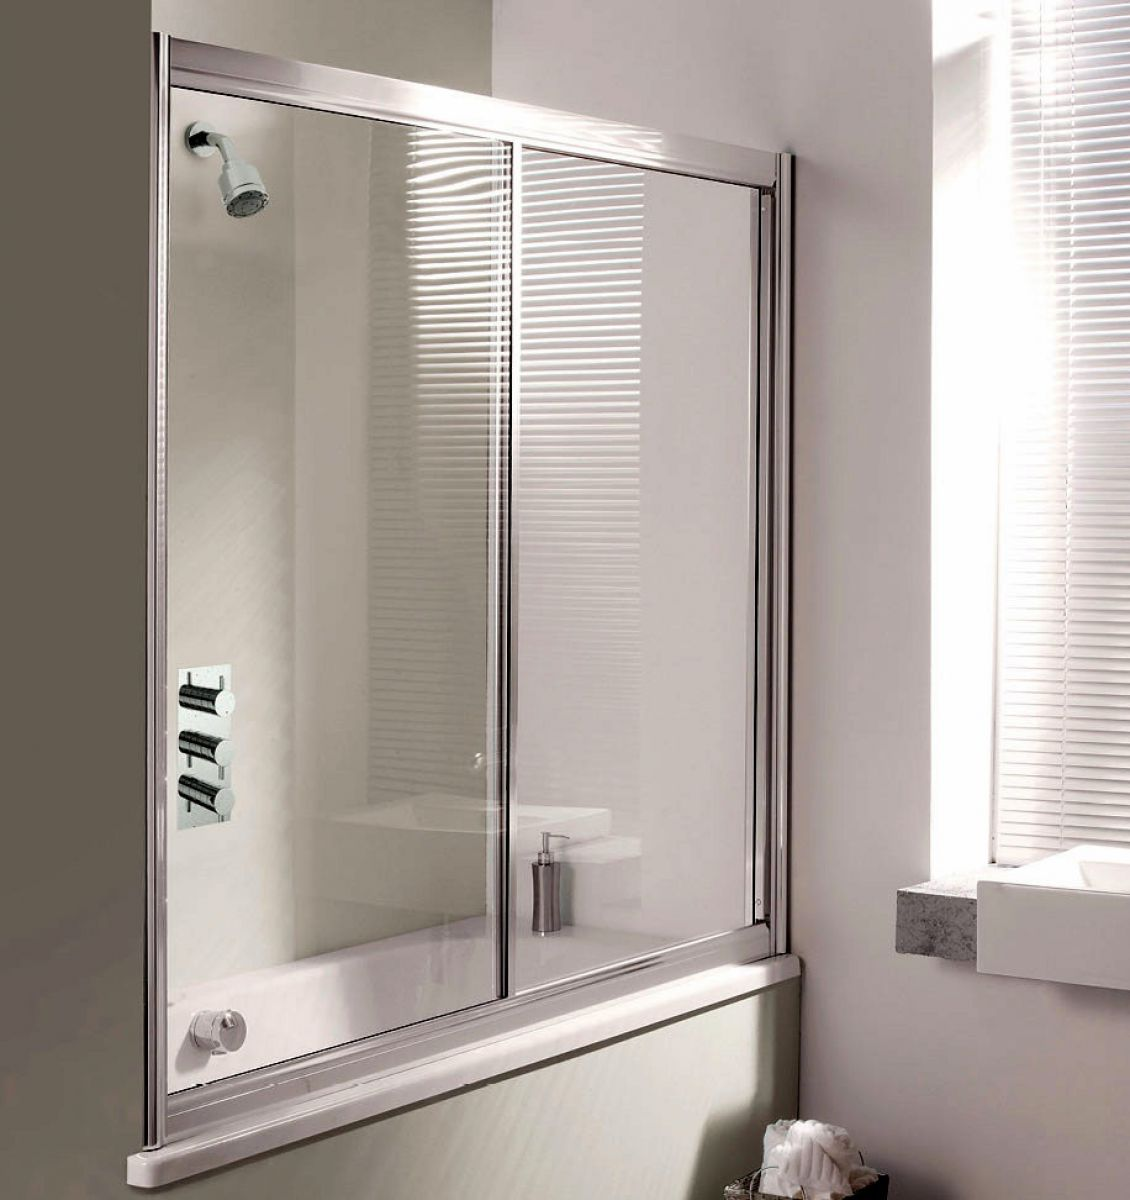 simpsons supreme overbath slider screen uk bathrooms simpsons supreme overbath slider screen